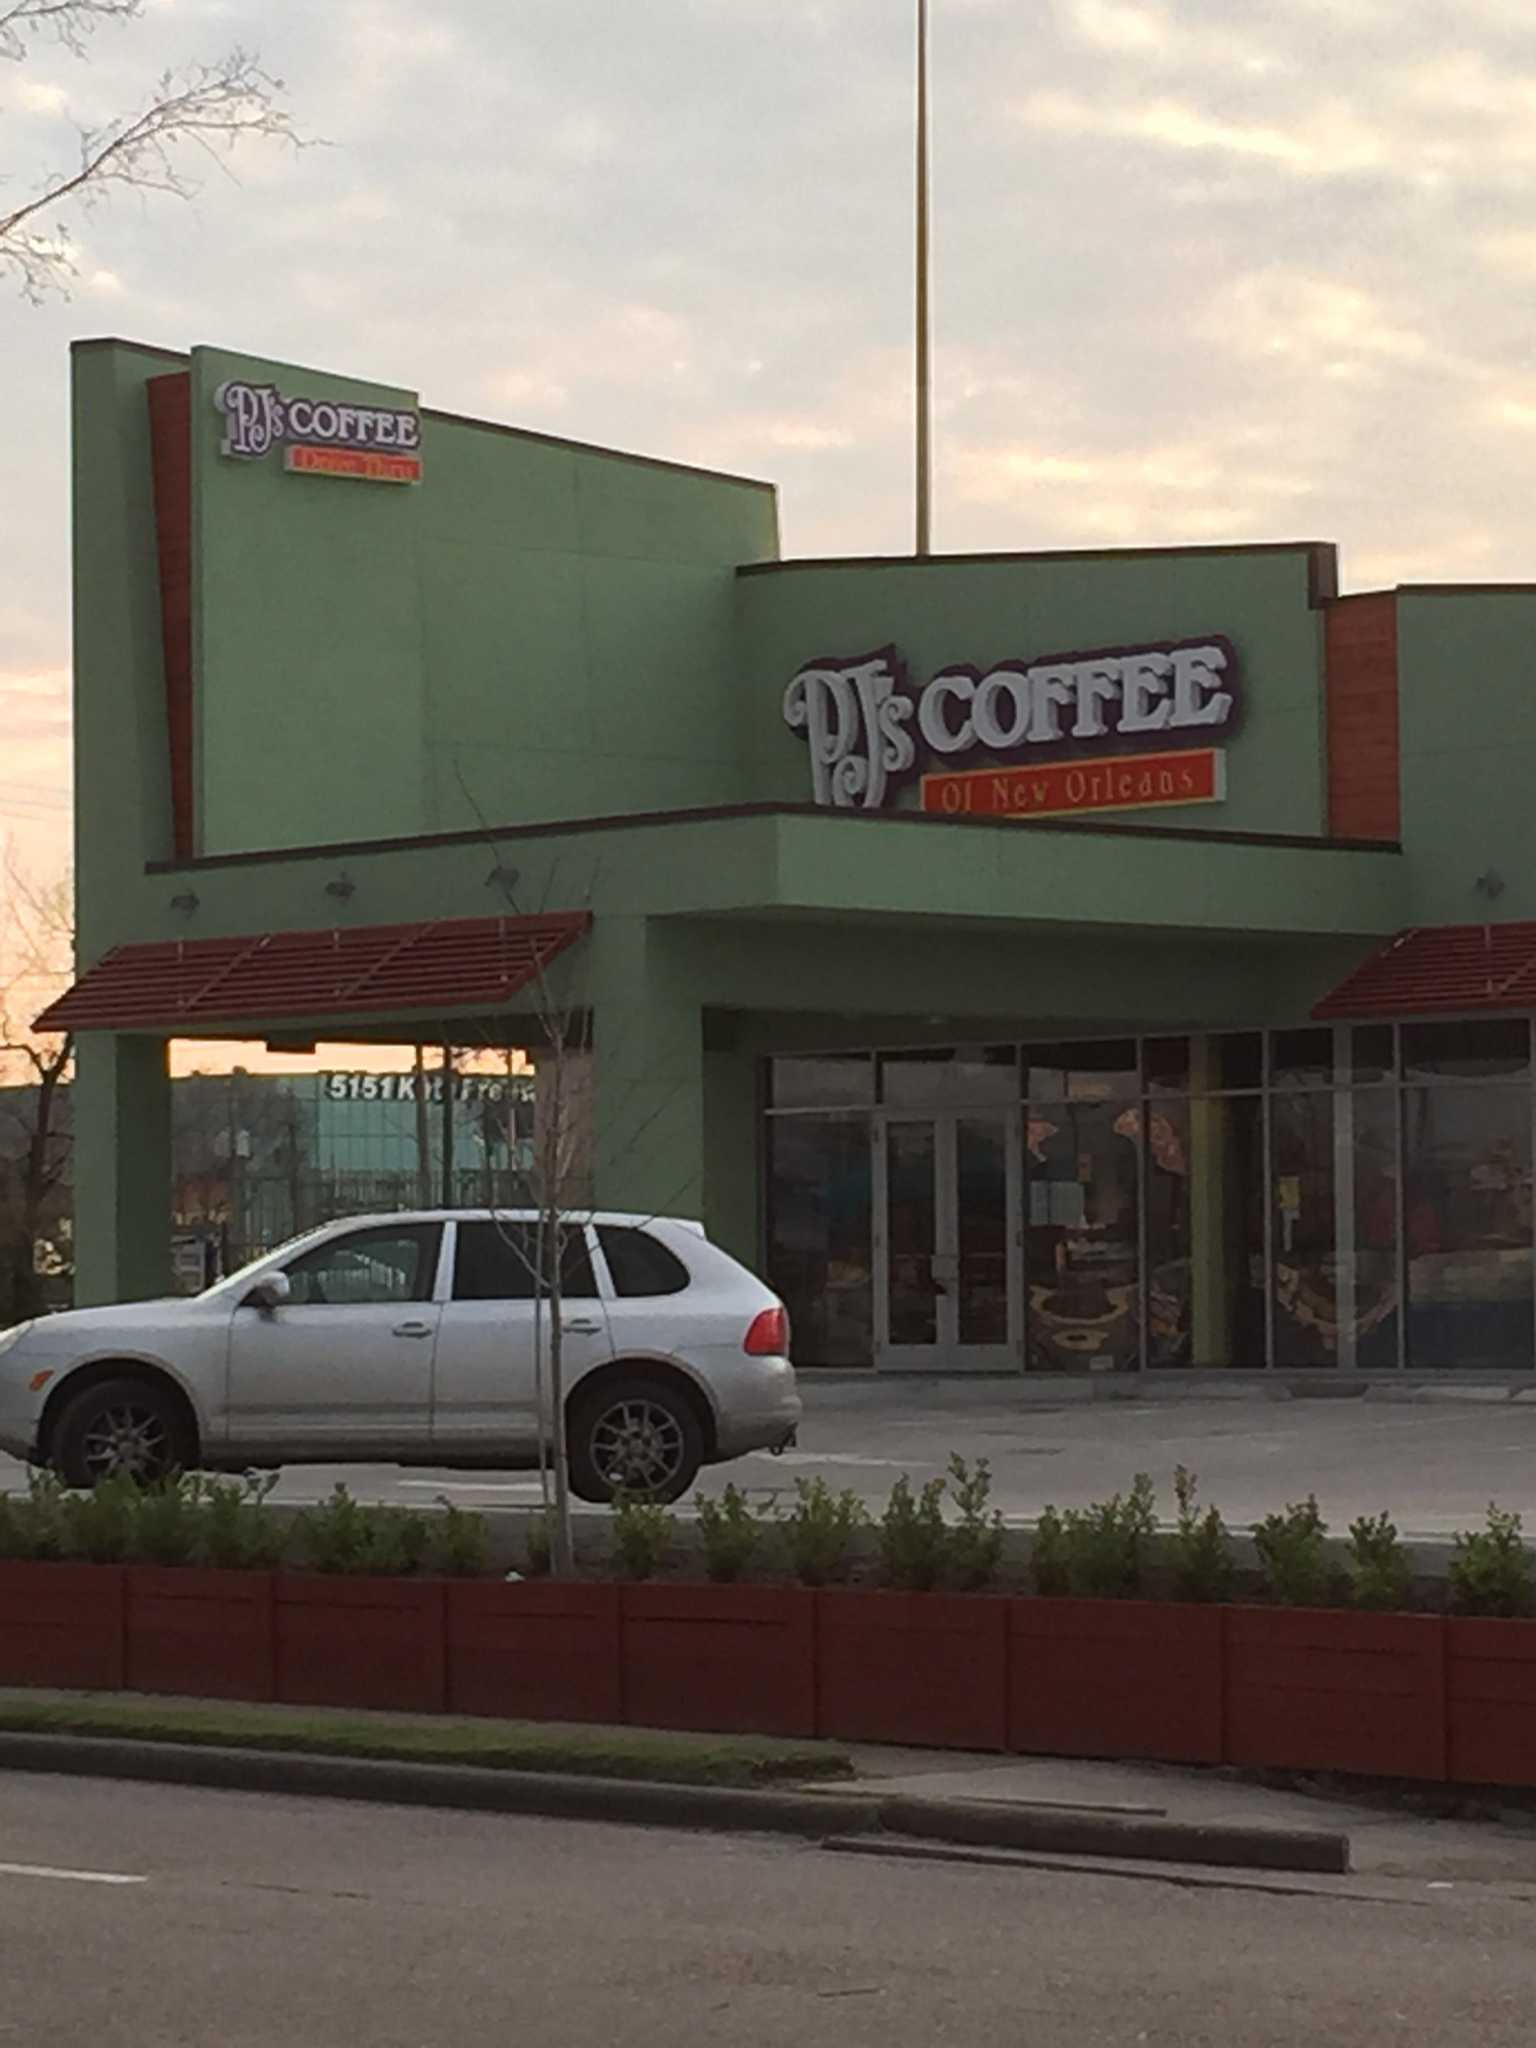 New Orleans-based coffee chain coming to San Antonio